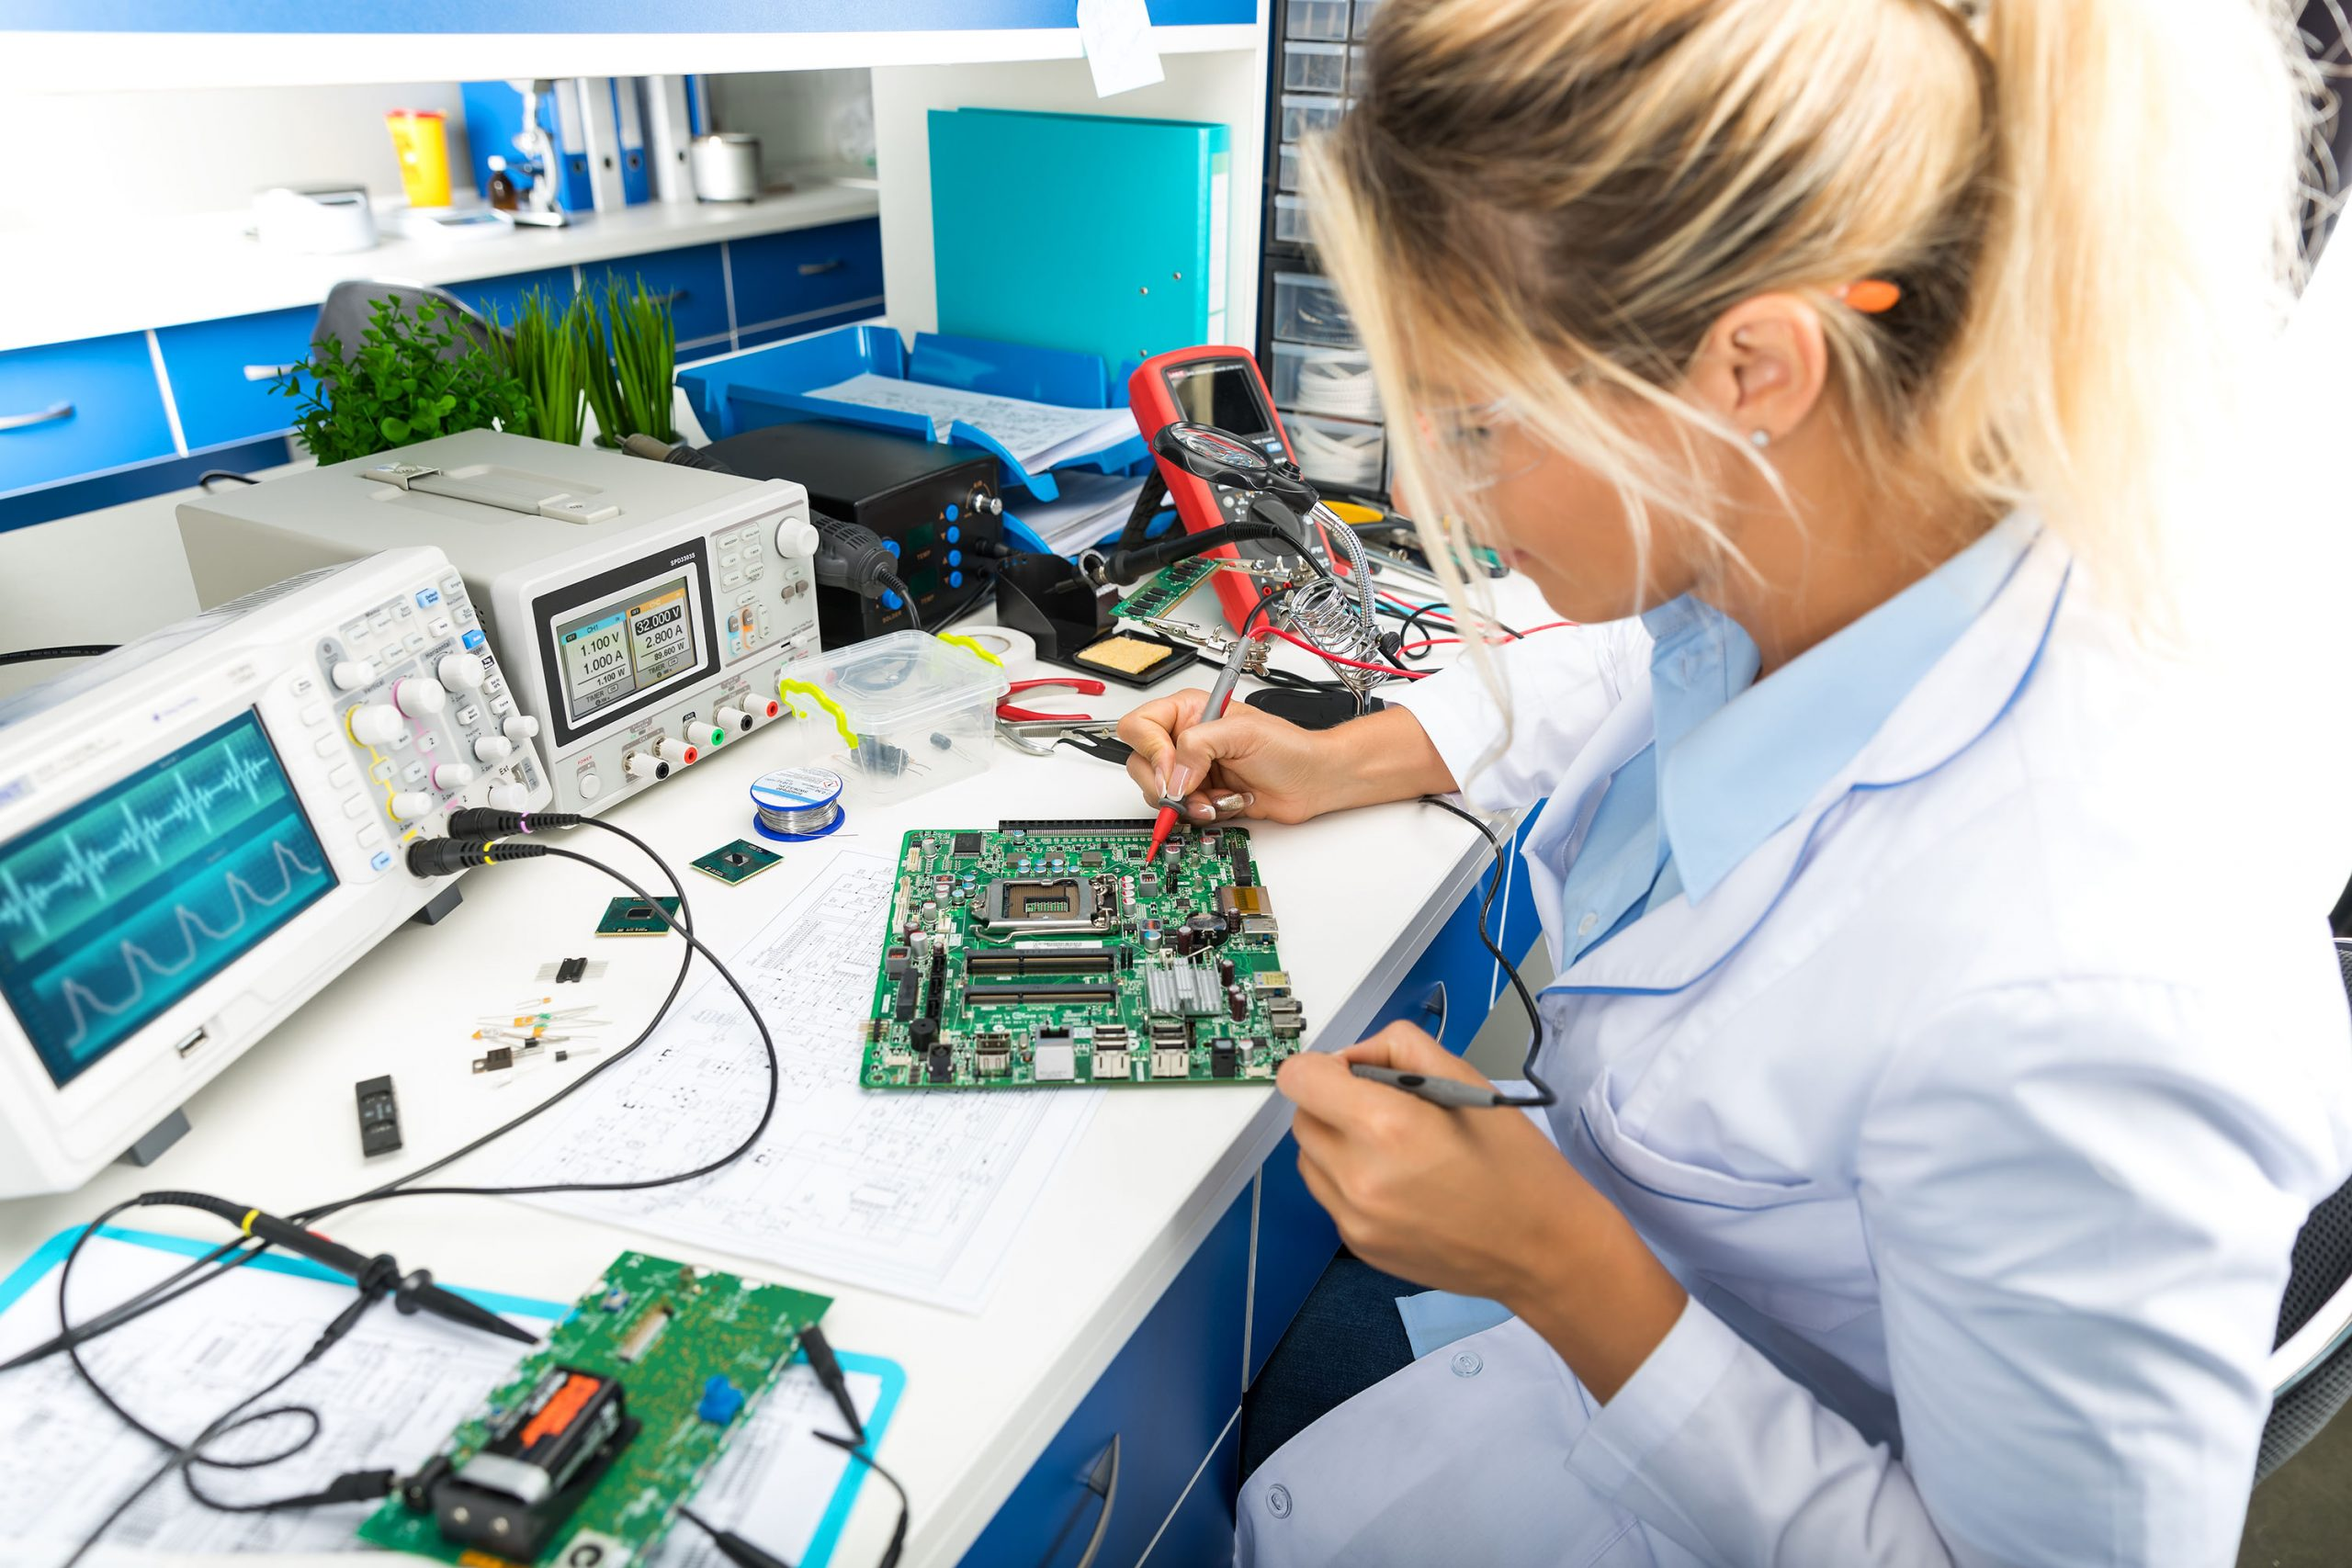 Test Equipment 101 – The Basics of Electronic Testing